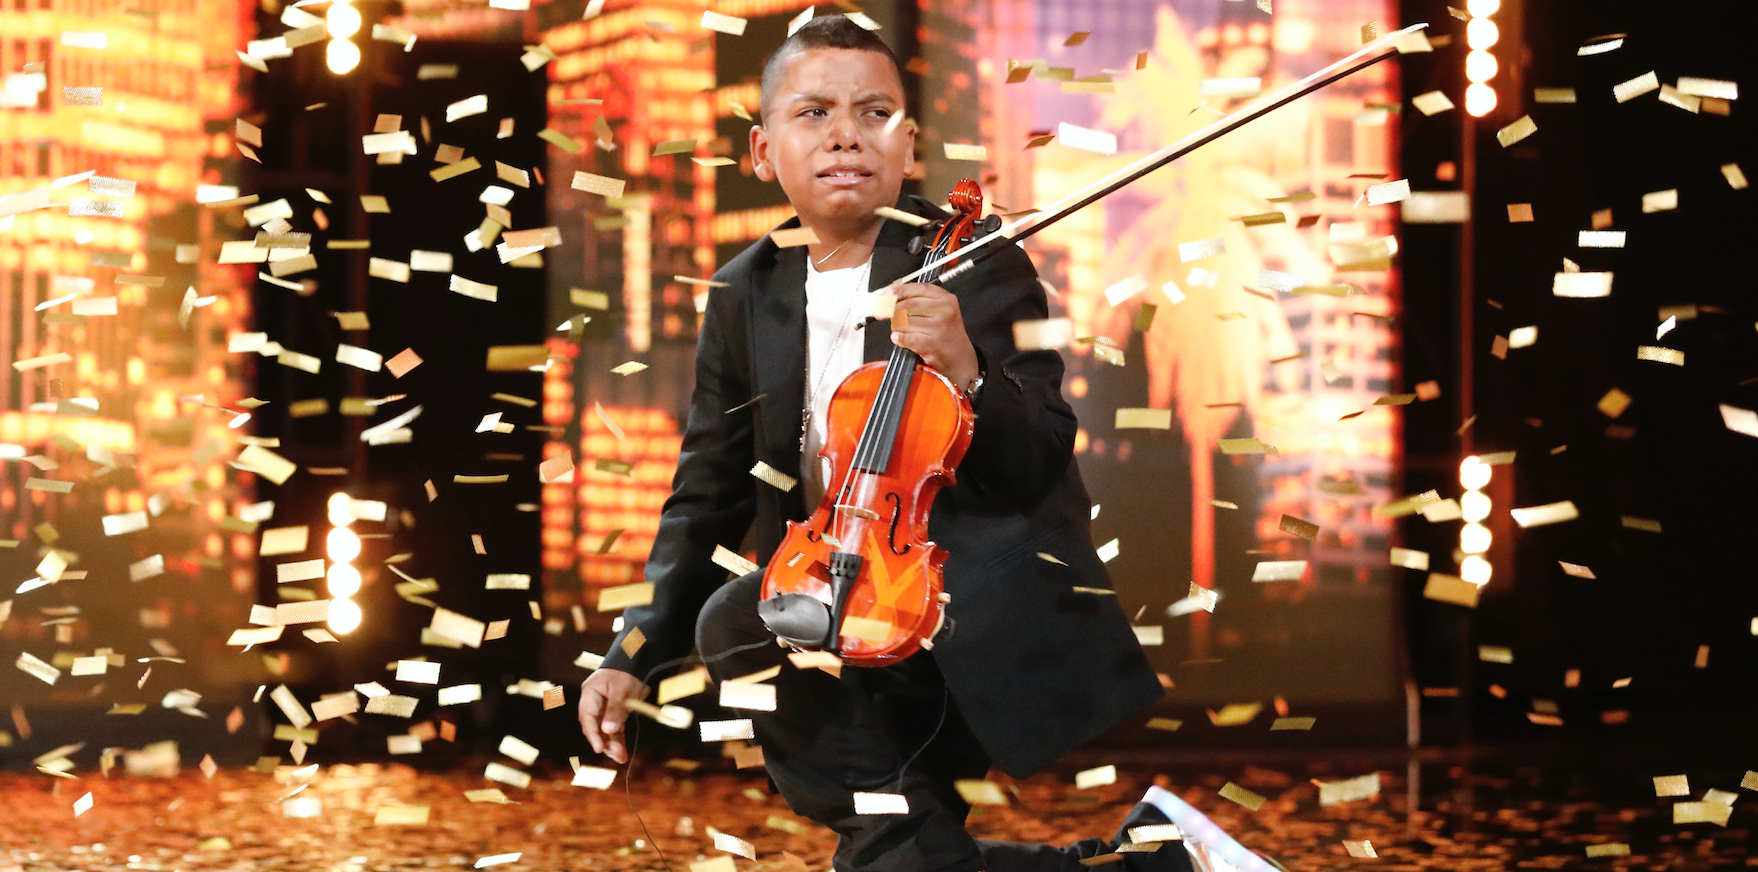 Agt Finalists 2020 List.Agt The Champions Season 2 Details Including Voting